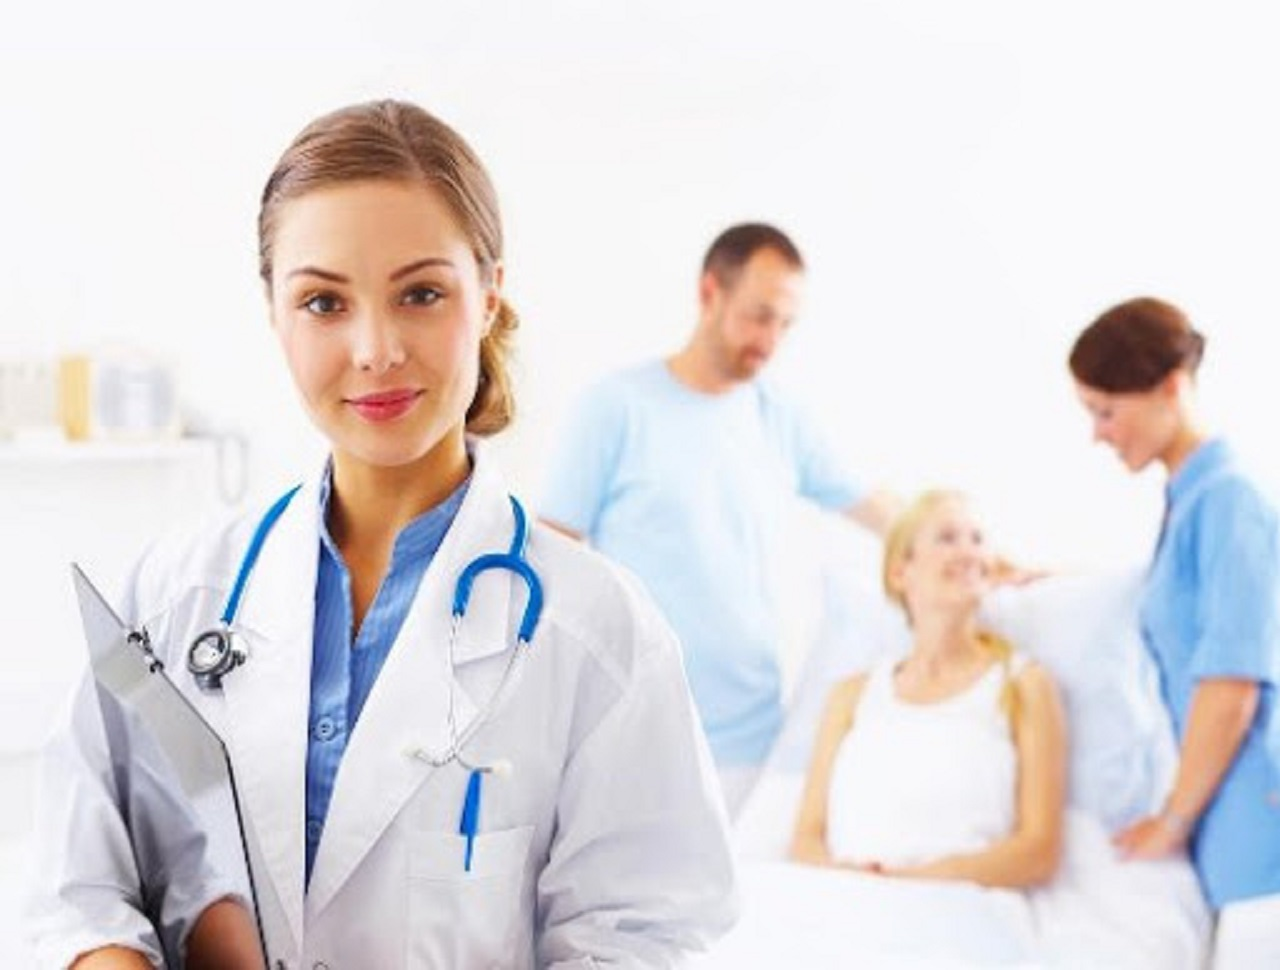 para medical byNCVERI-National Council of Vocational Education & Research Institute